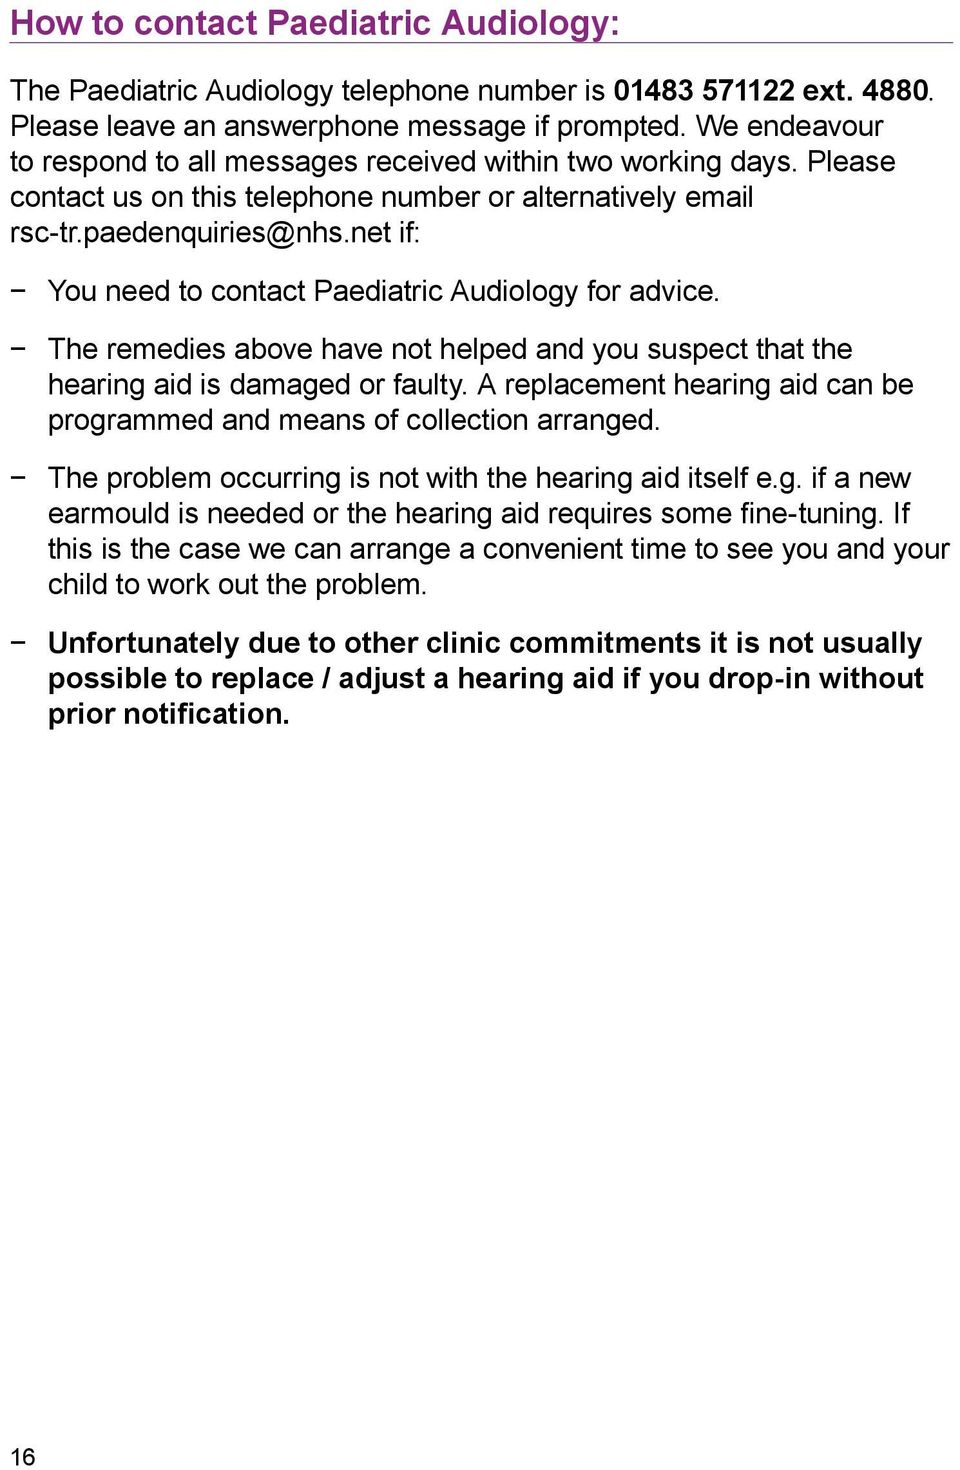 net if: You need to contact Paediatric Audiology for advice. The remedies above have not helped and you suspect that the hearing aid is damaged or faulty.